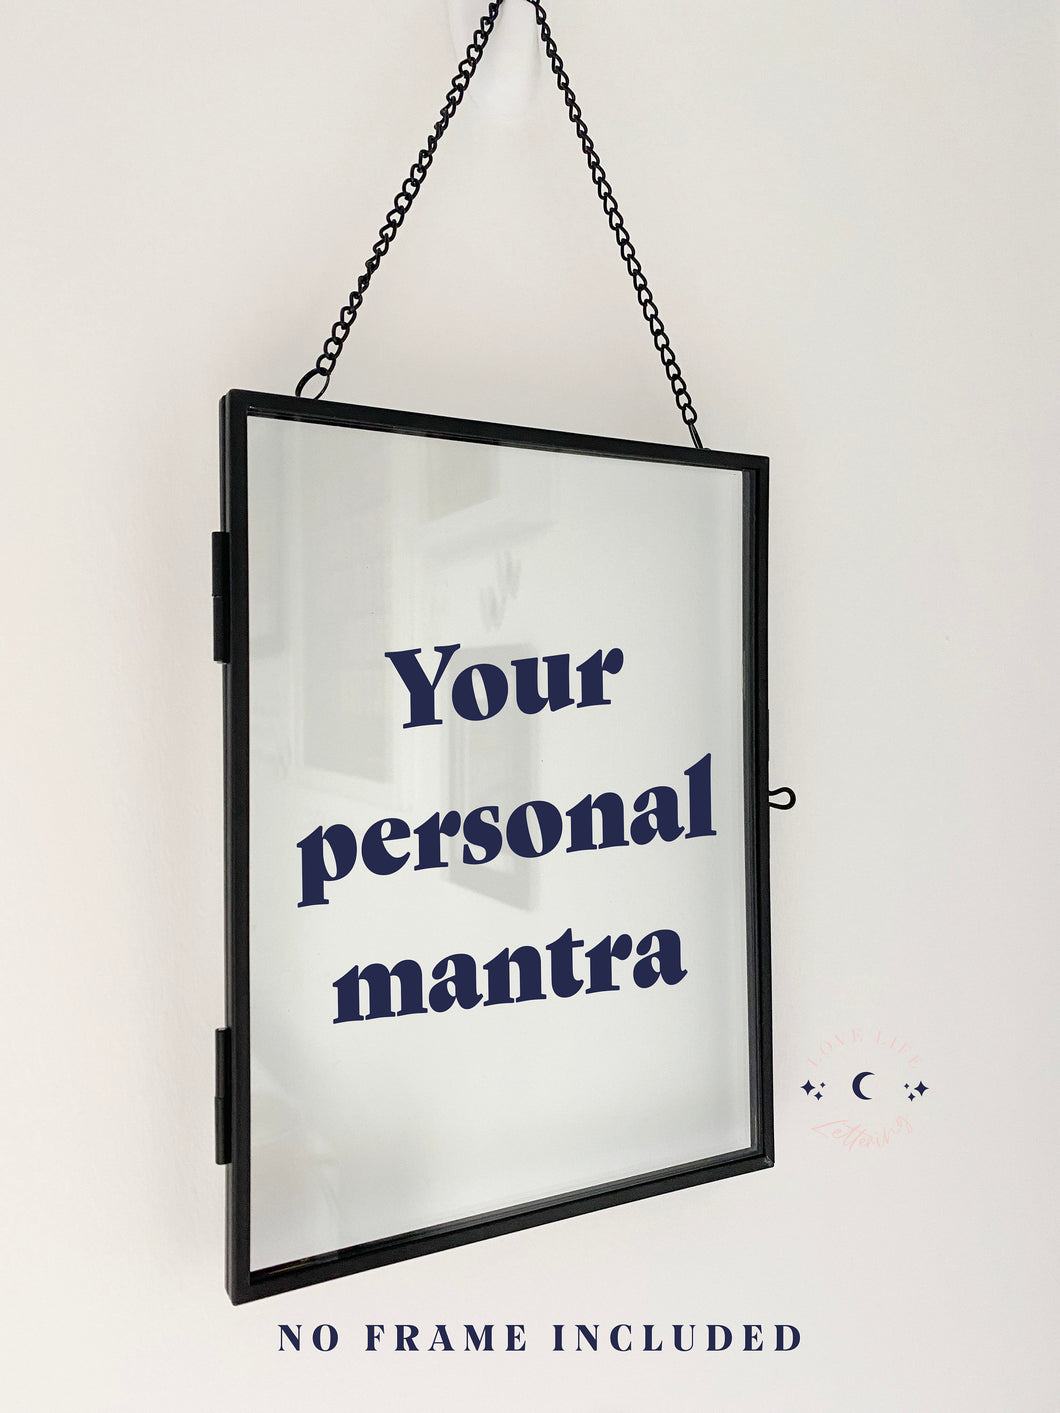 Vinyl Decal Sticker Personal Mantra For DIY Home Decor // Blank Frame Sticker, Add Your Favourite Quote